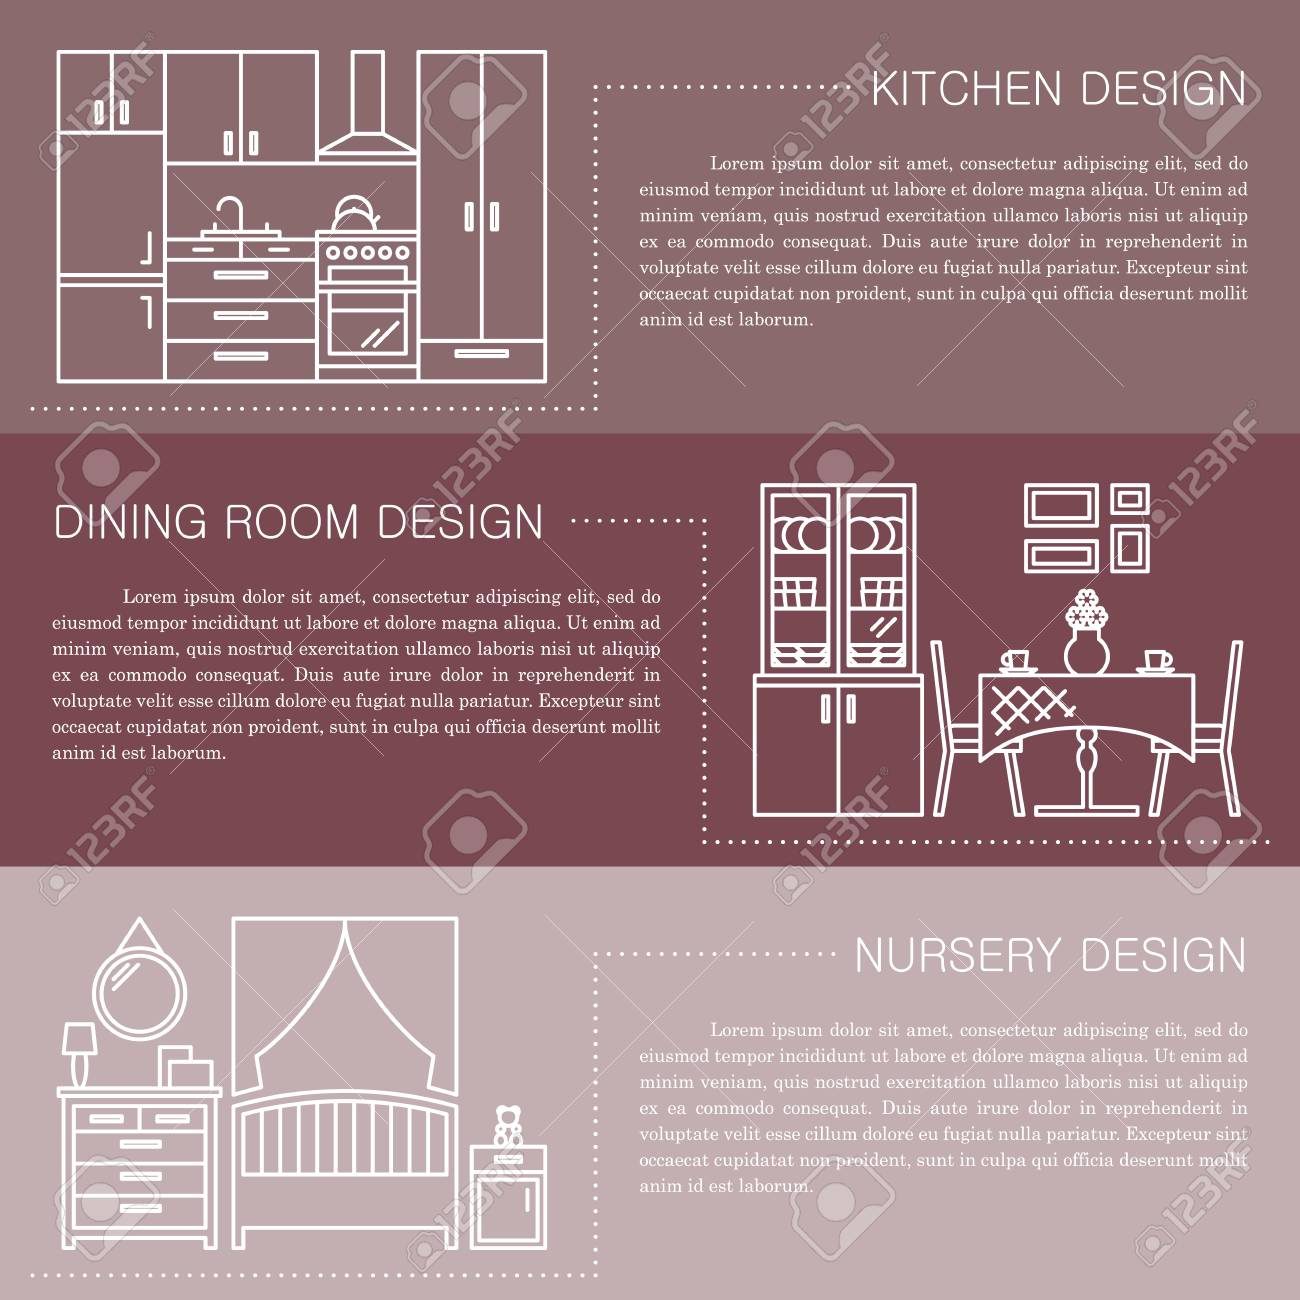 Modern Brochure Flyer Design Template With Line Interior Icons Kitchen Dining Room Nursery